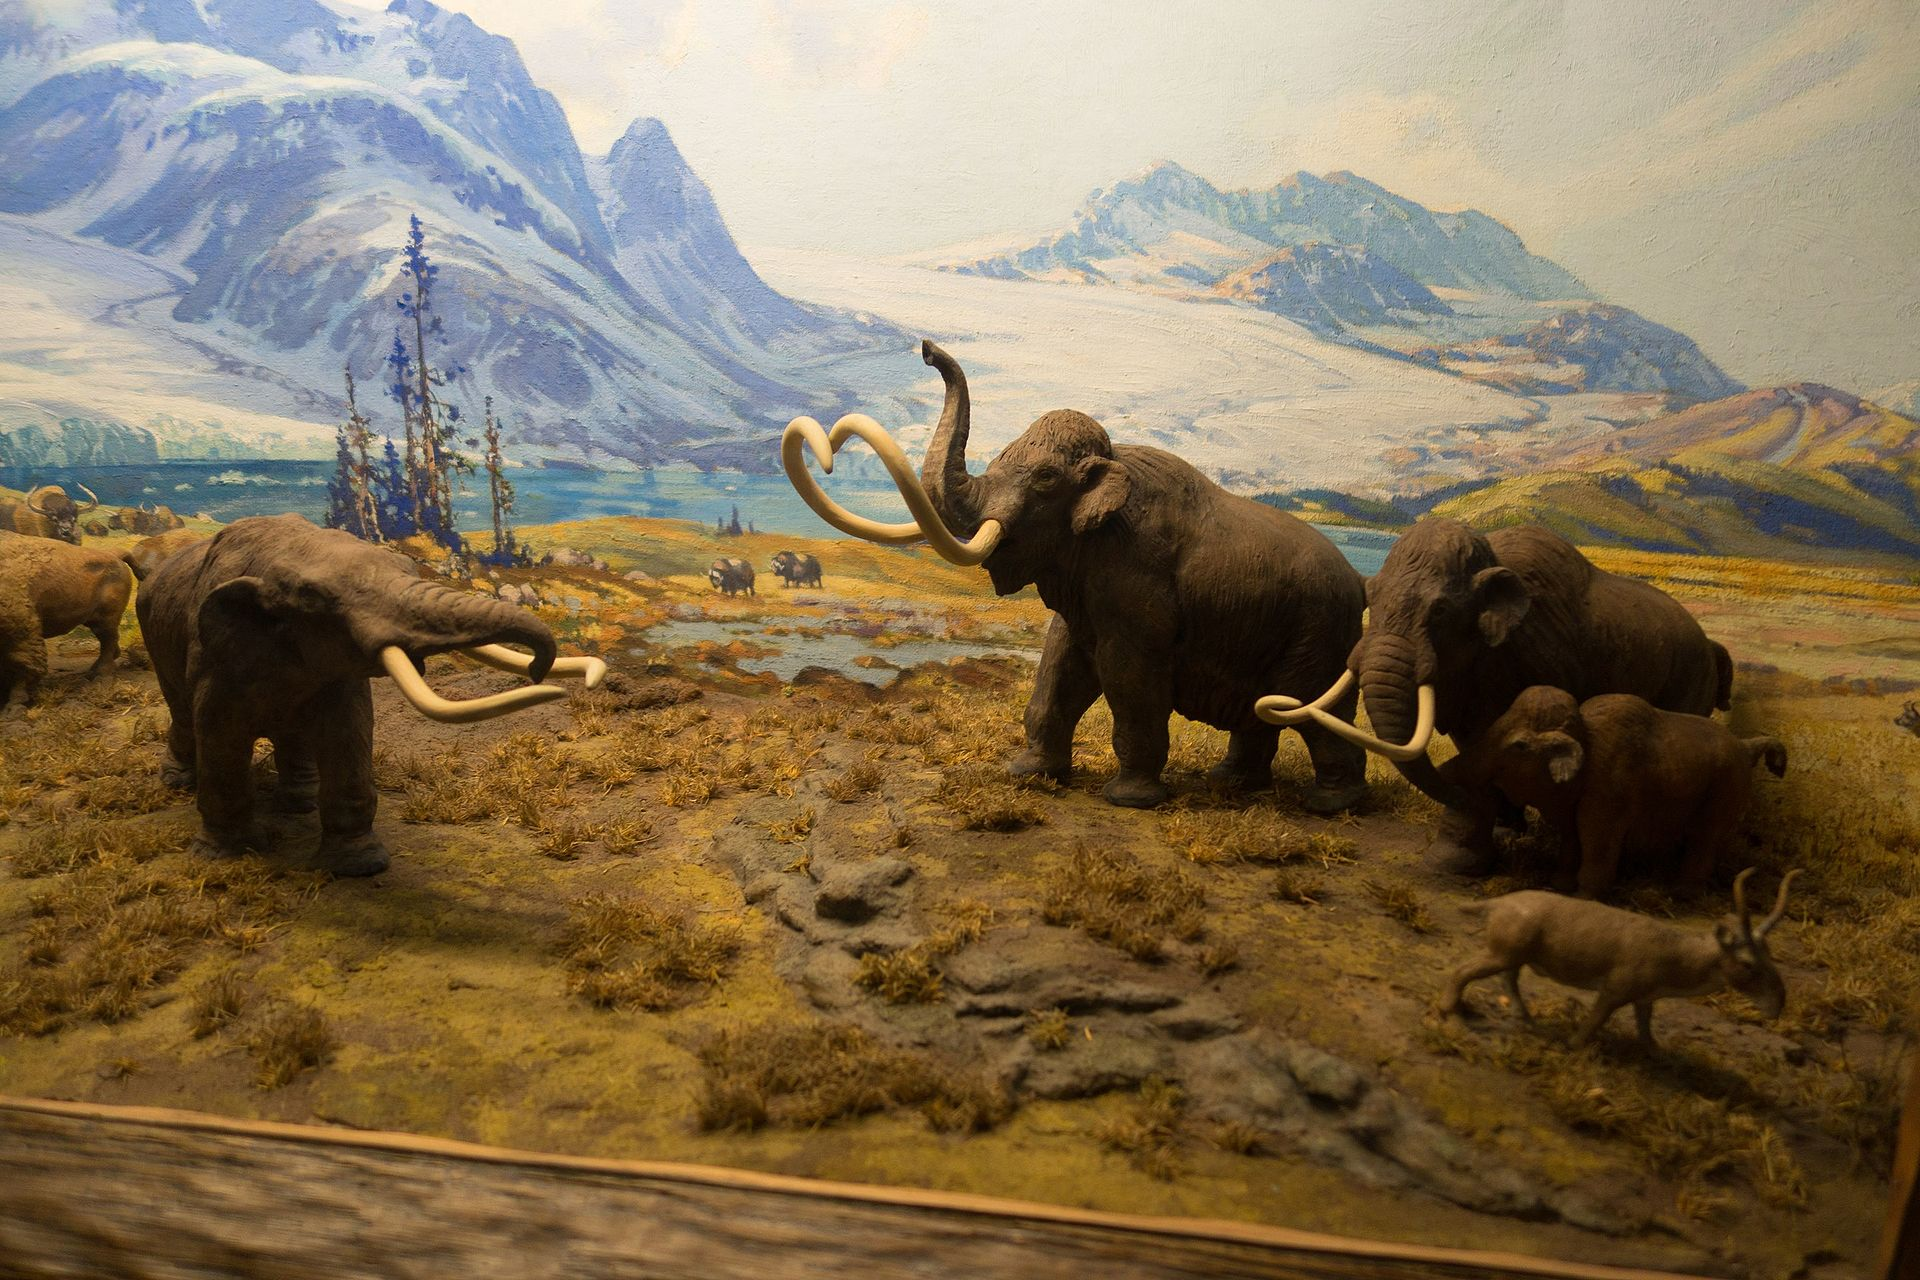 Some mammoths.